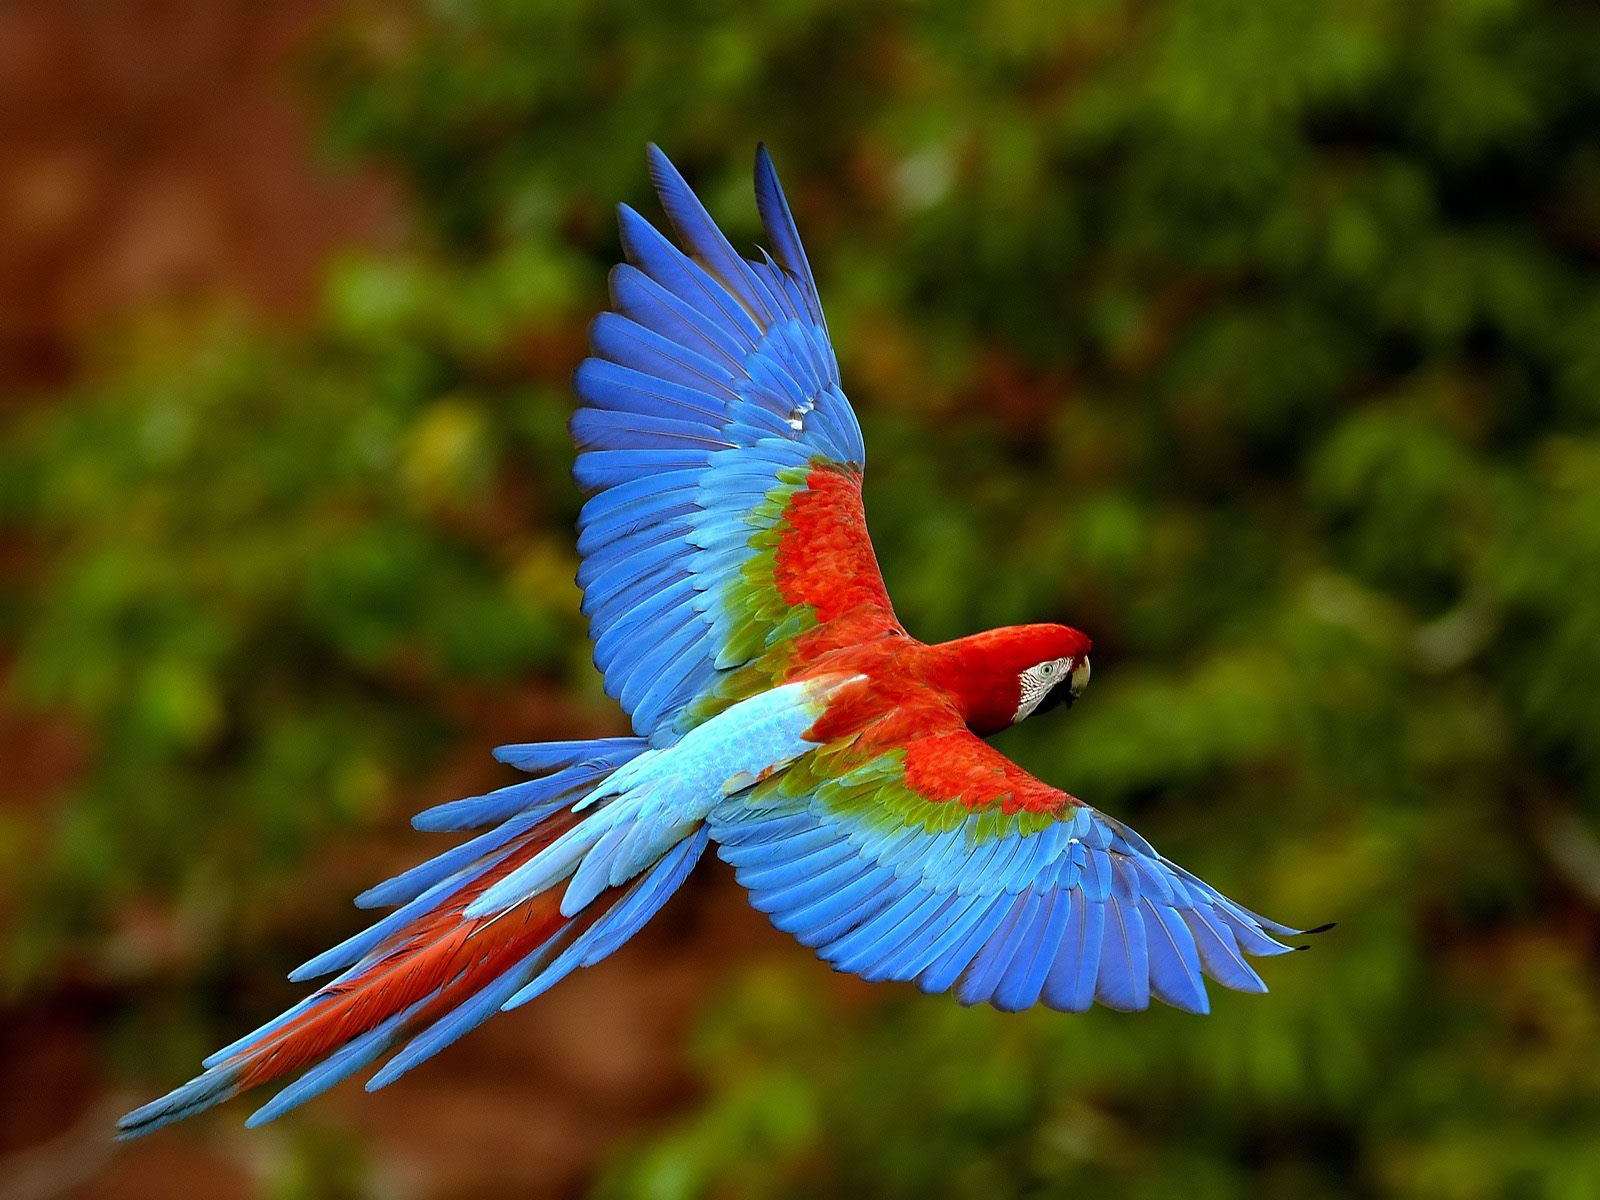 Stunning Parrot Wallpaper